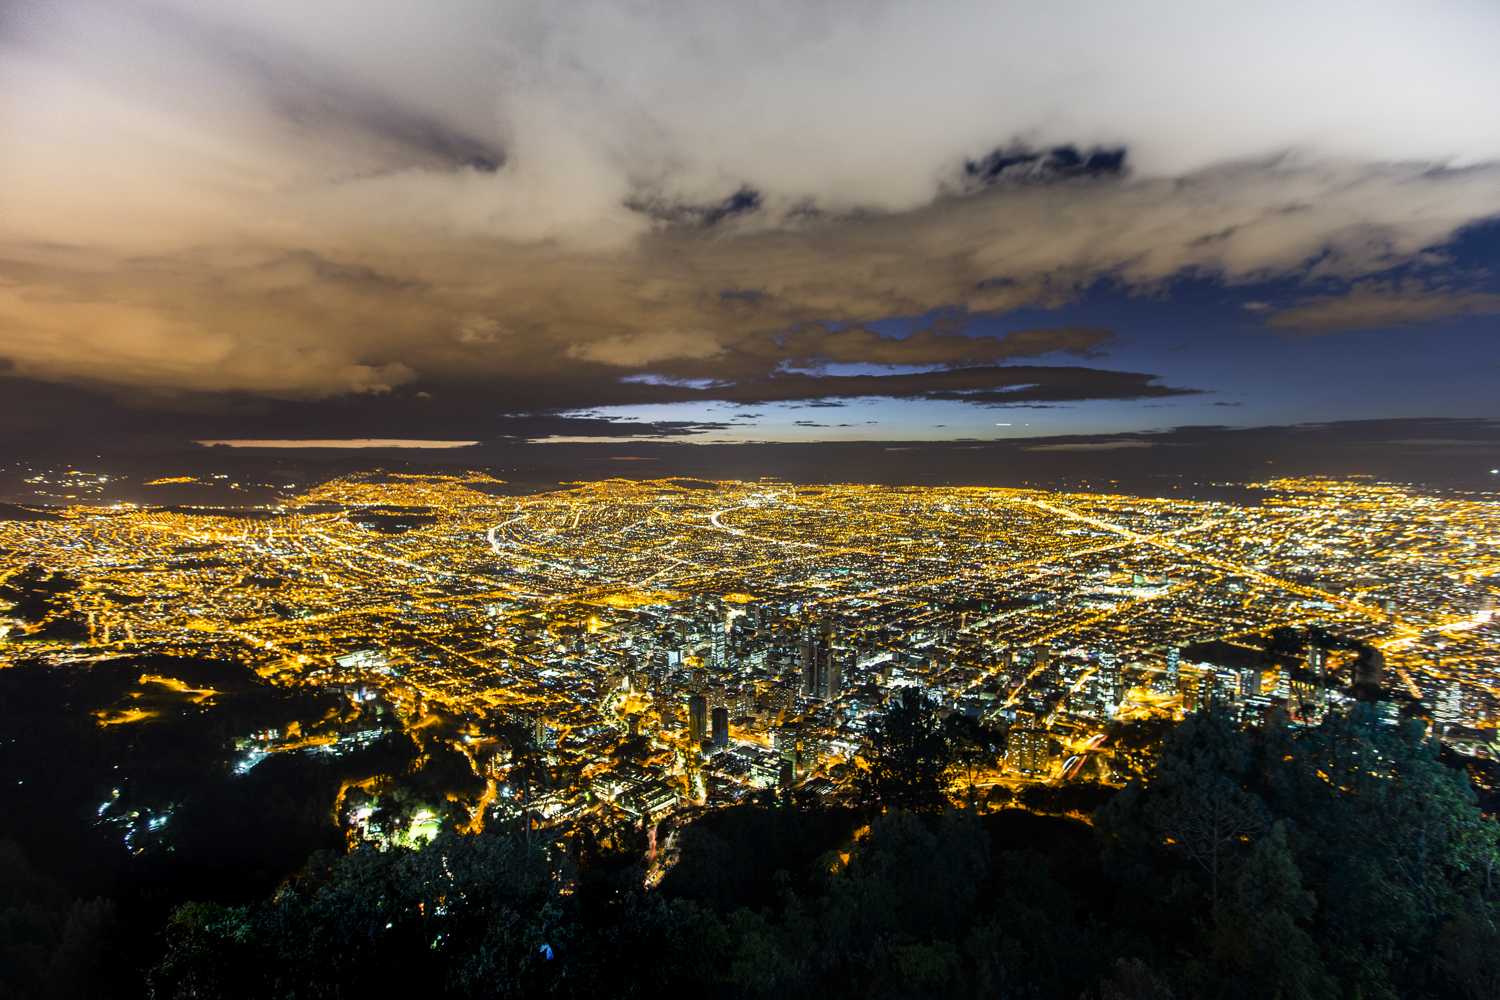 We took a ride to the top of Mount Monserrate which was over 10,000 ft above sea level and my ears actually popped on the ride up....in a cable car. The mountain offered insane views of the city which we caught just in time for sunset.   Sony A7II, Canon 16-35mm f/2.8L II @16mm (iso100, f/4, 5s)